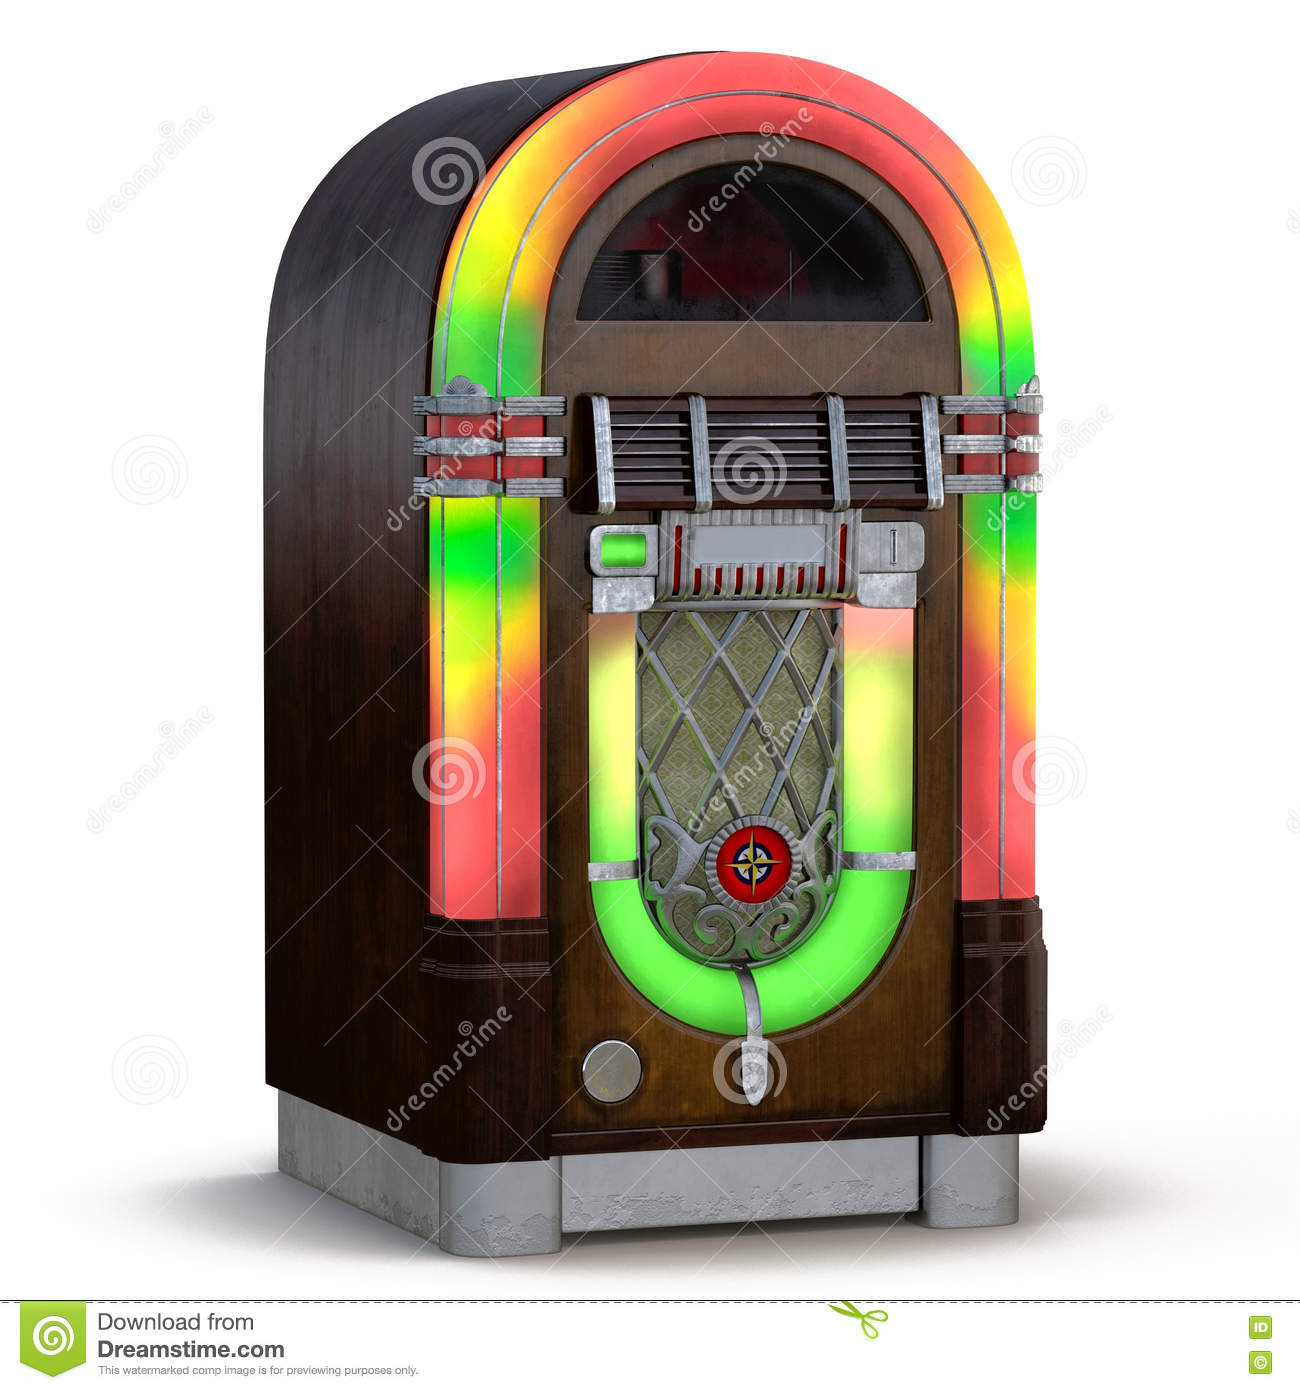 Old Jukebox Music Player Isolated On White 3D Illustration